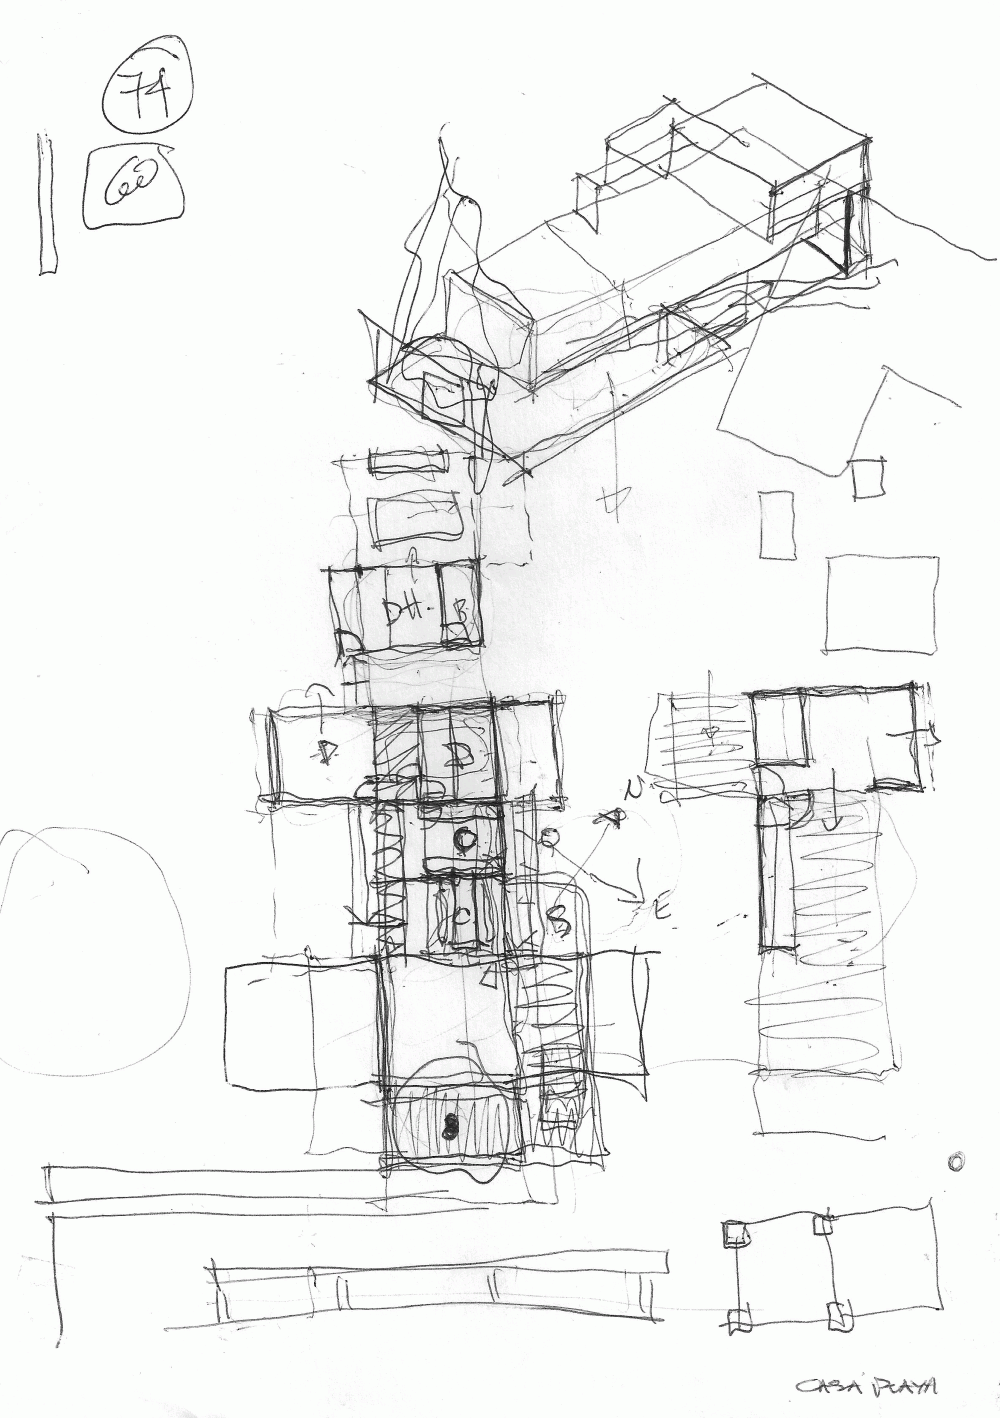 529d36e9e8e44e0120000047_casa-en-la-playa-bak-architects_sketch-1000x1418